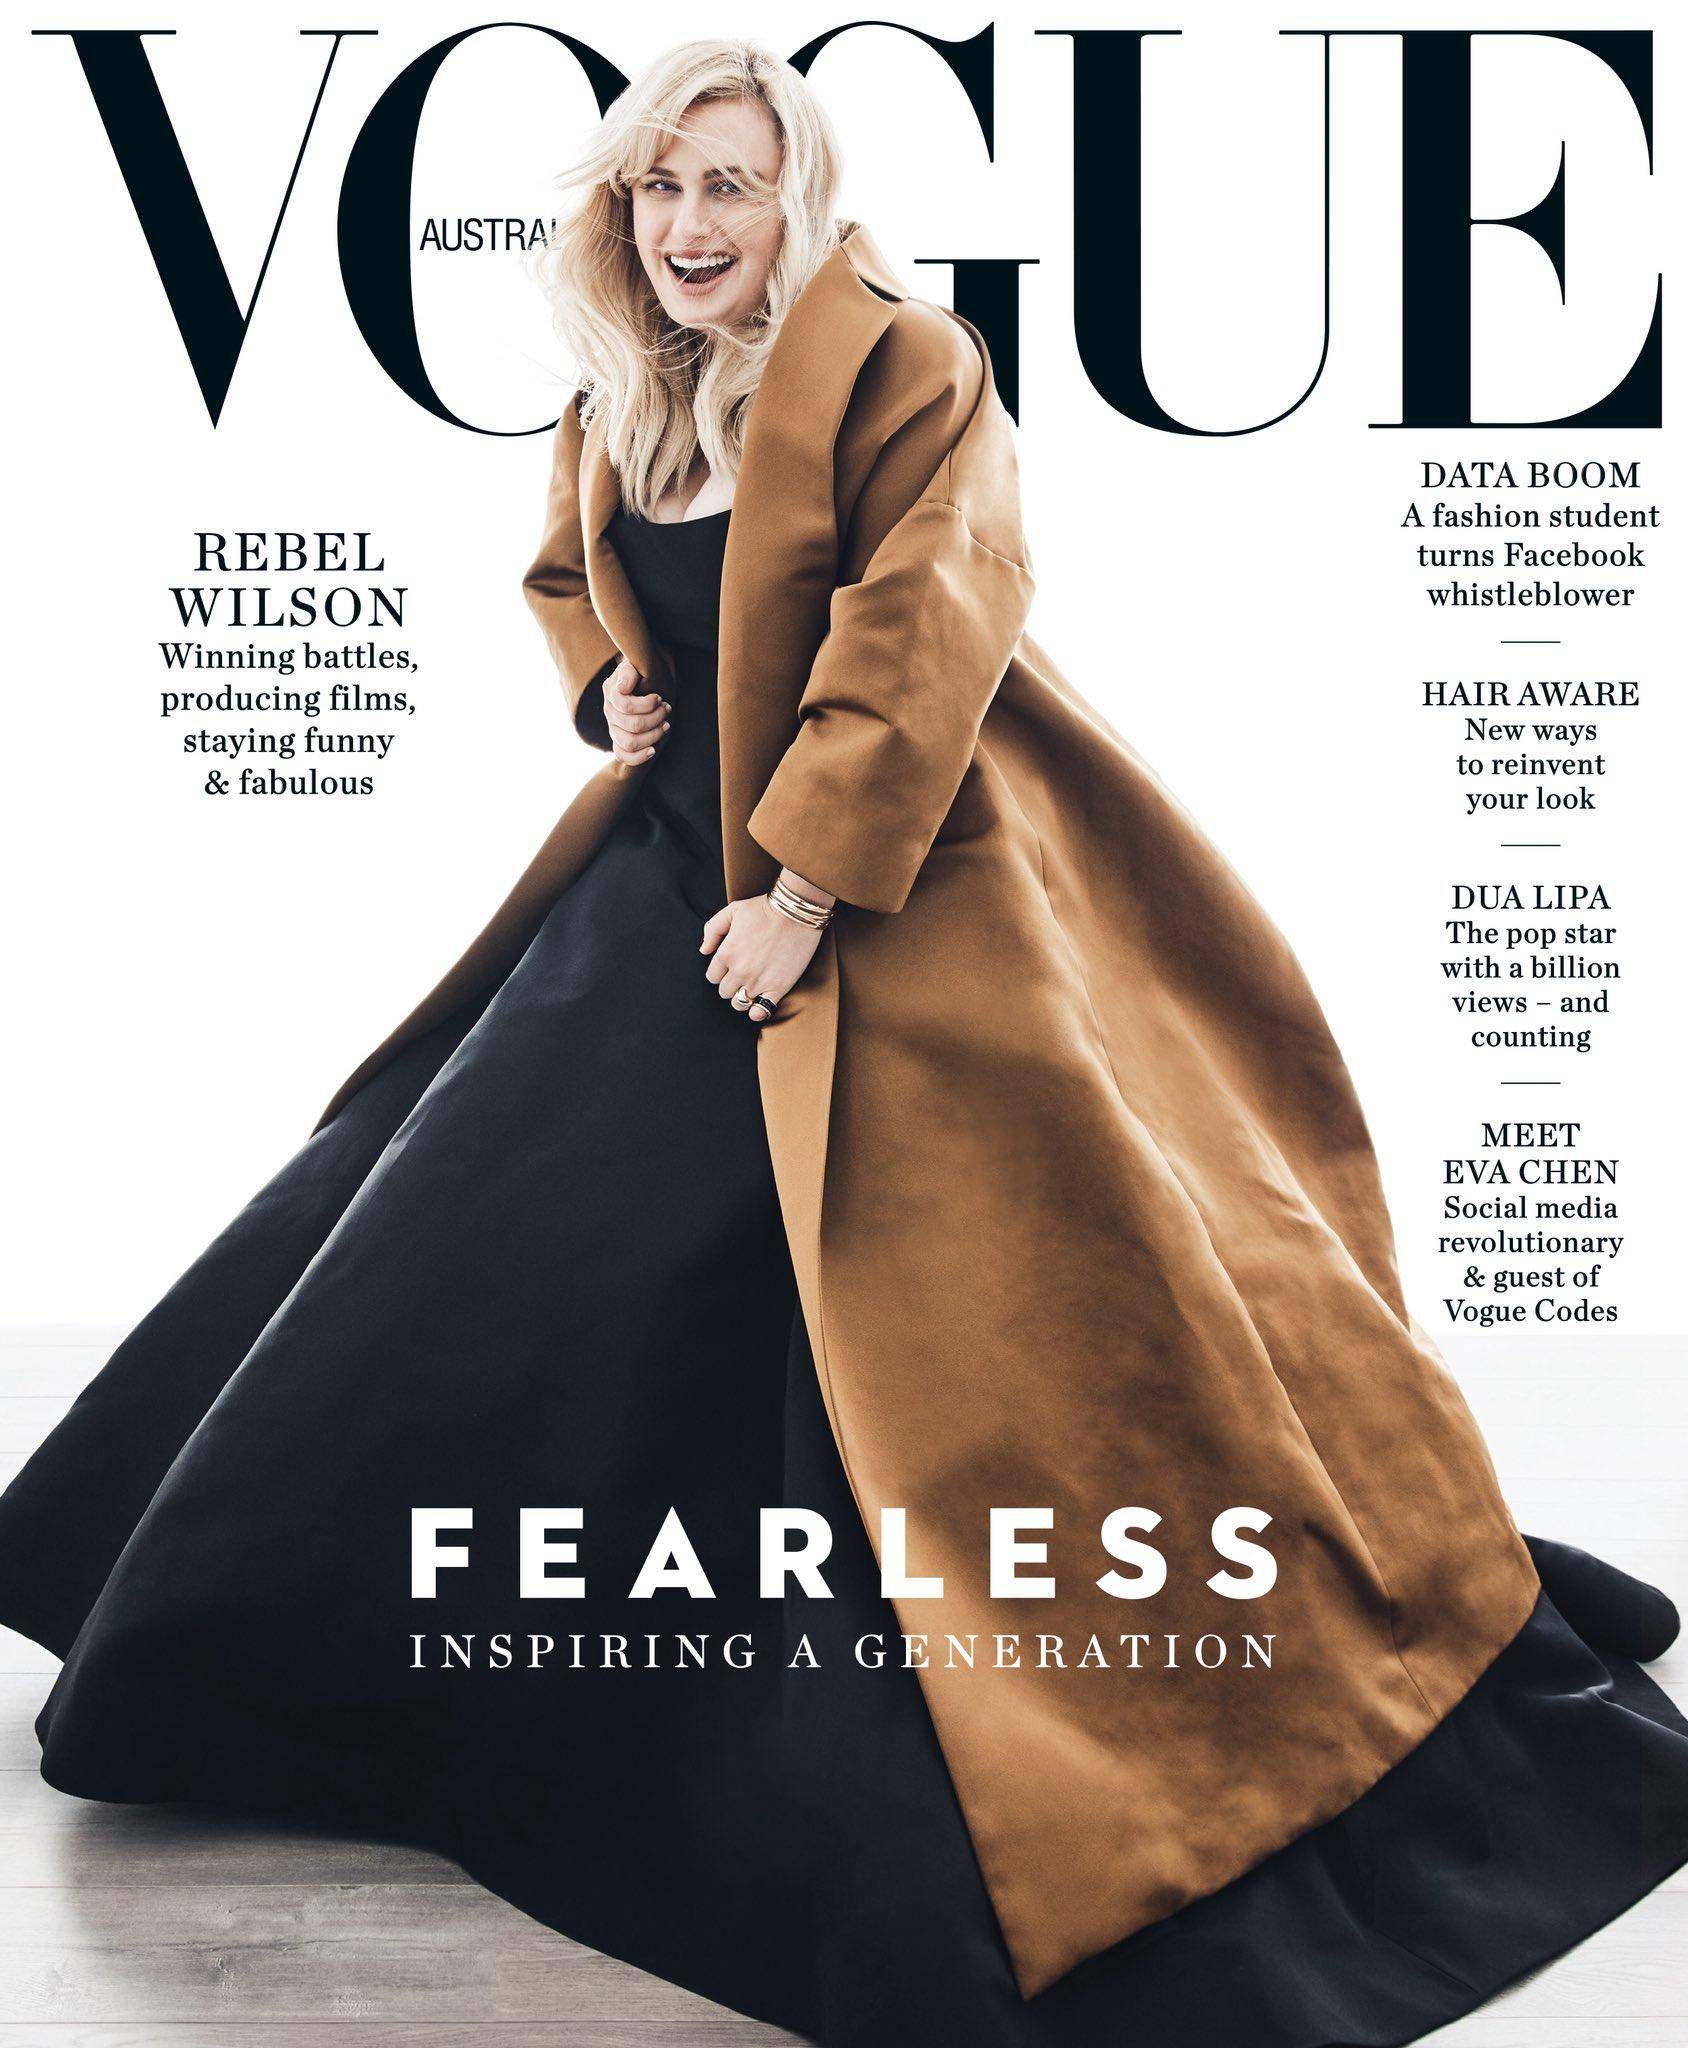 a4483574a0cd2 Rebel Wilson graces the cover of Vogue Australia s June issue. (Photo   Nicole Bentley for Vogue Australia)